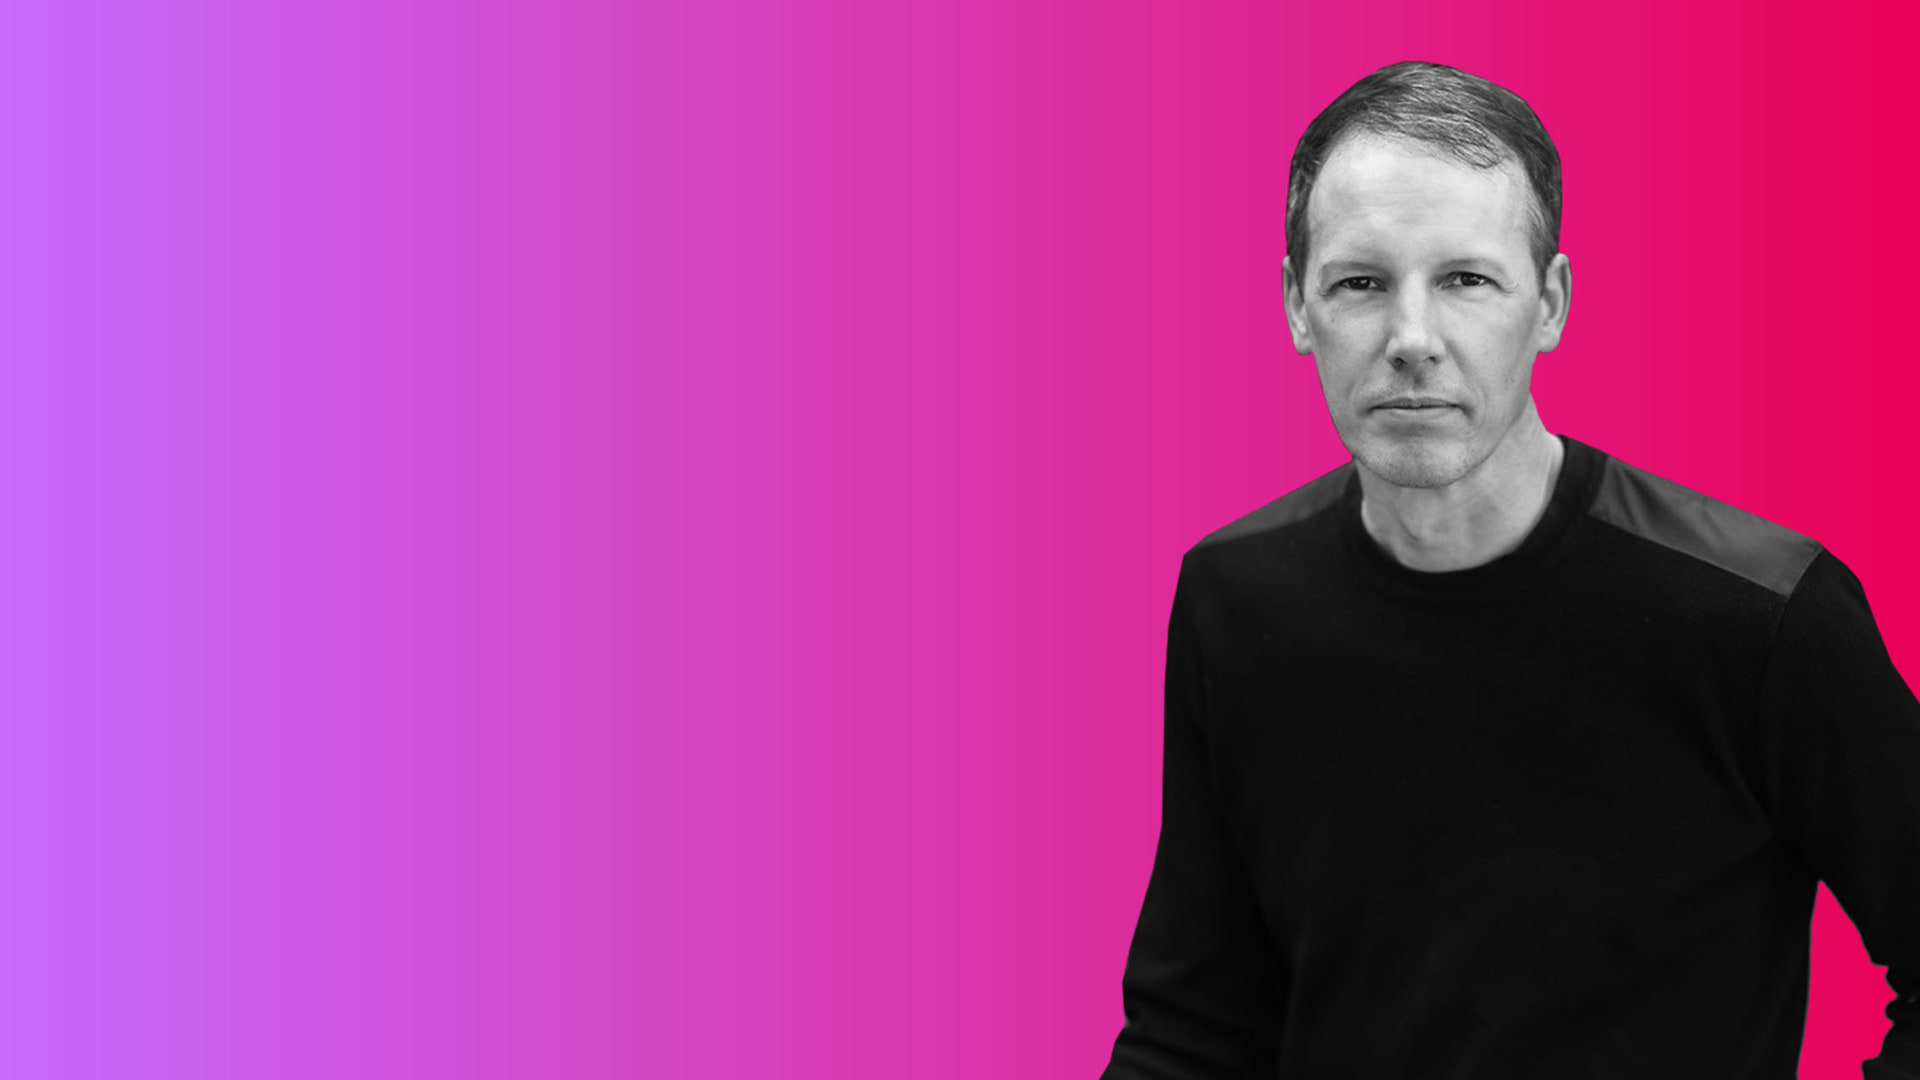 Sign Up Now: Meet Square's Jim McKelvey in Inc.'s Exclusive Stream Event at 12 p.m. Today